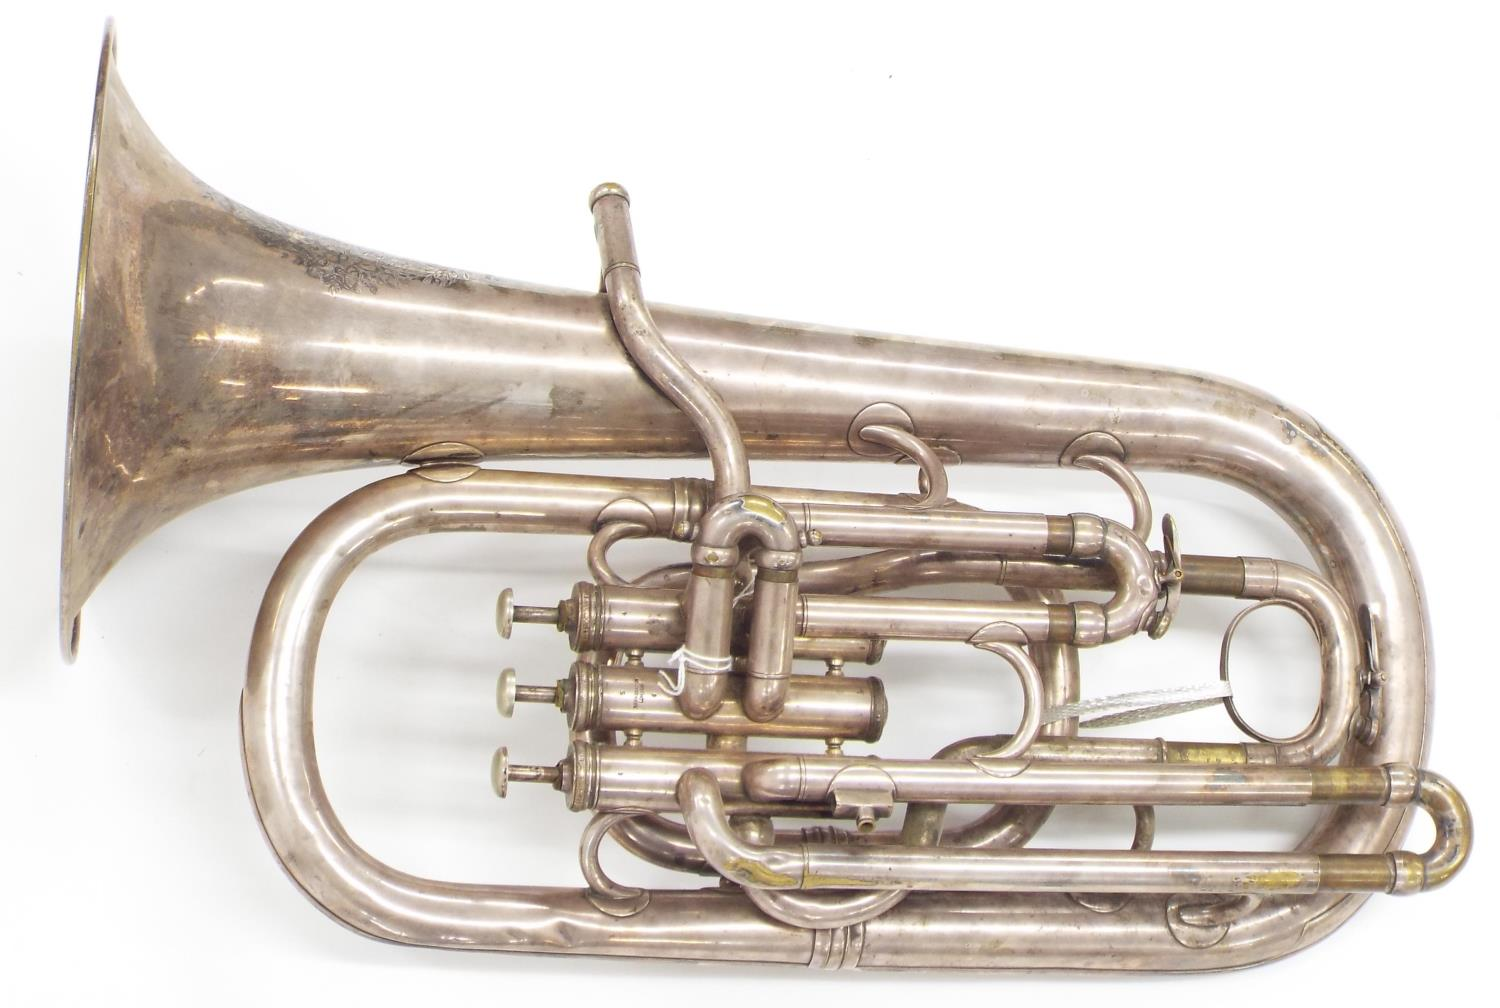 Baritone horn by and inscribed Hawkes & Son., London, Excelsior Sonorous, three Périnet valves